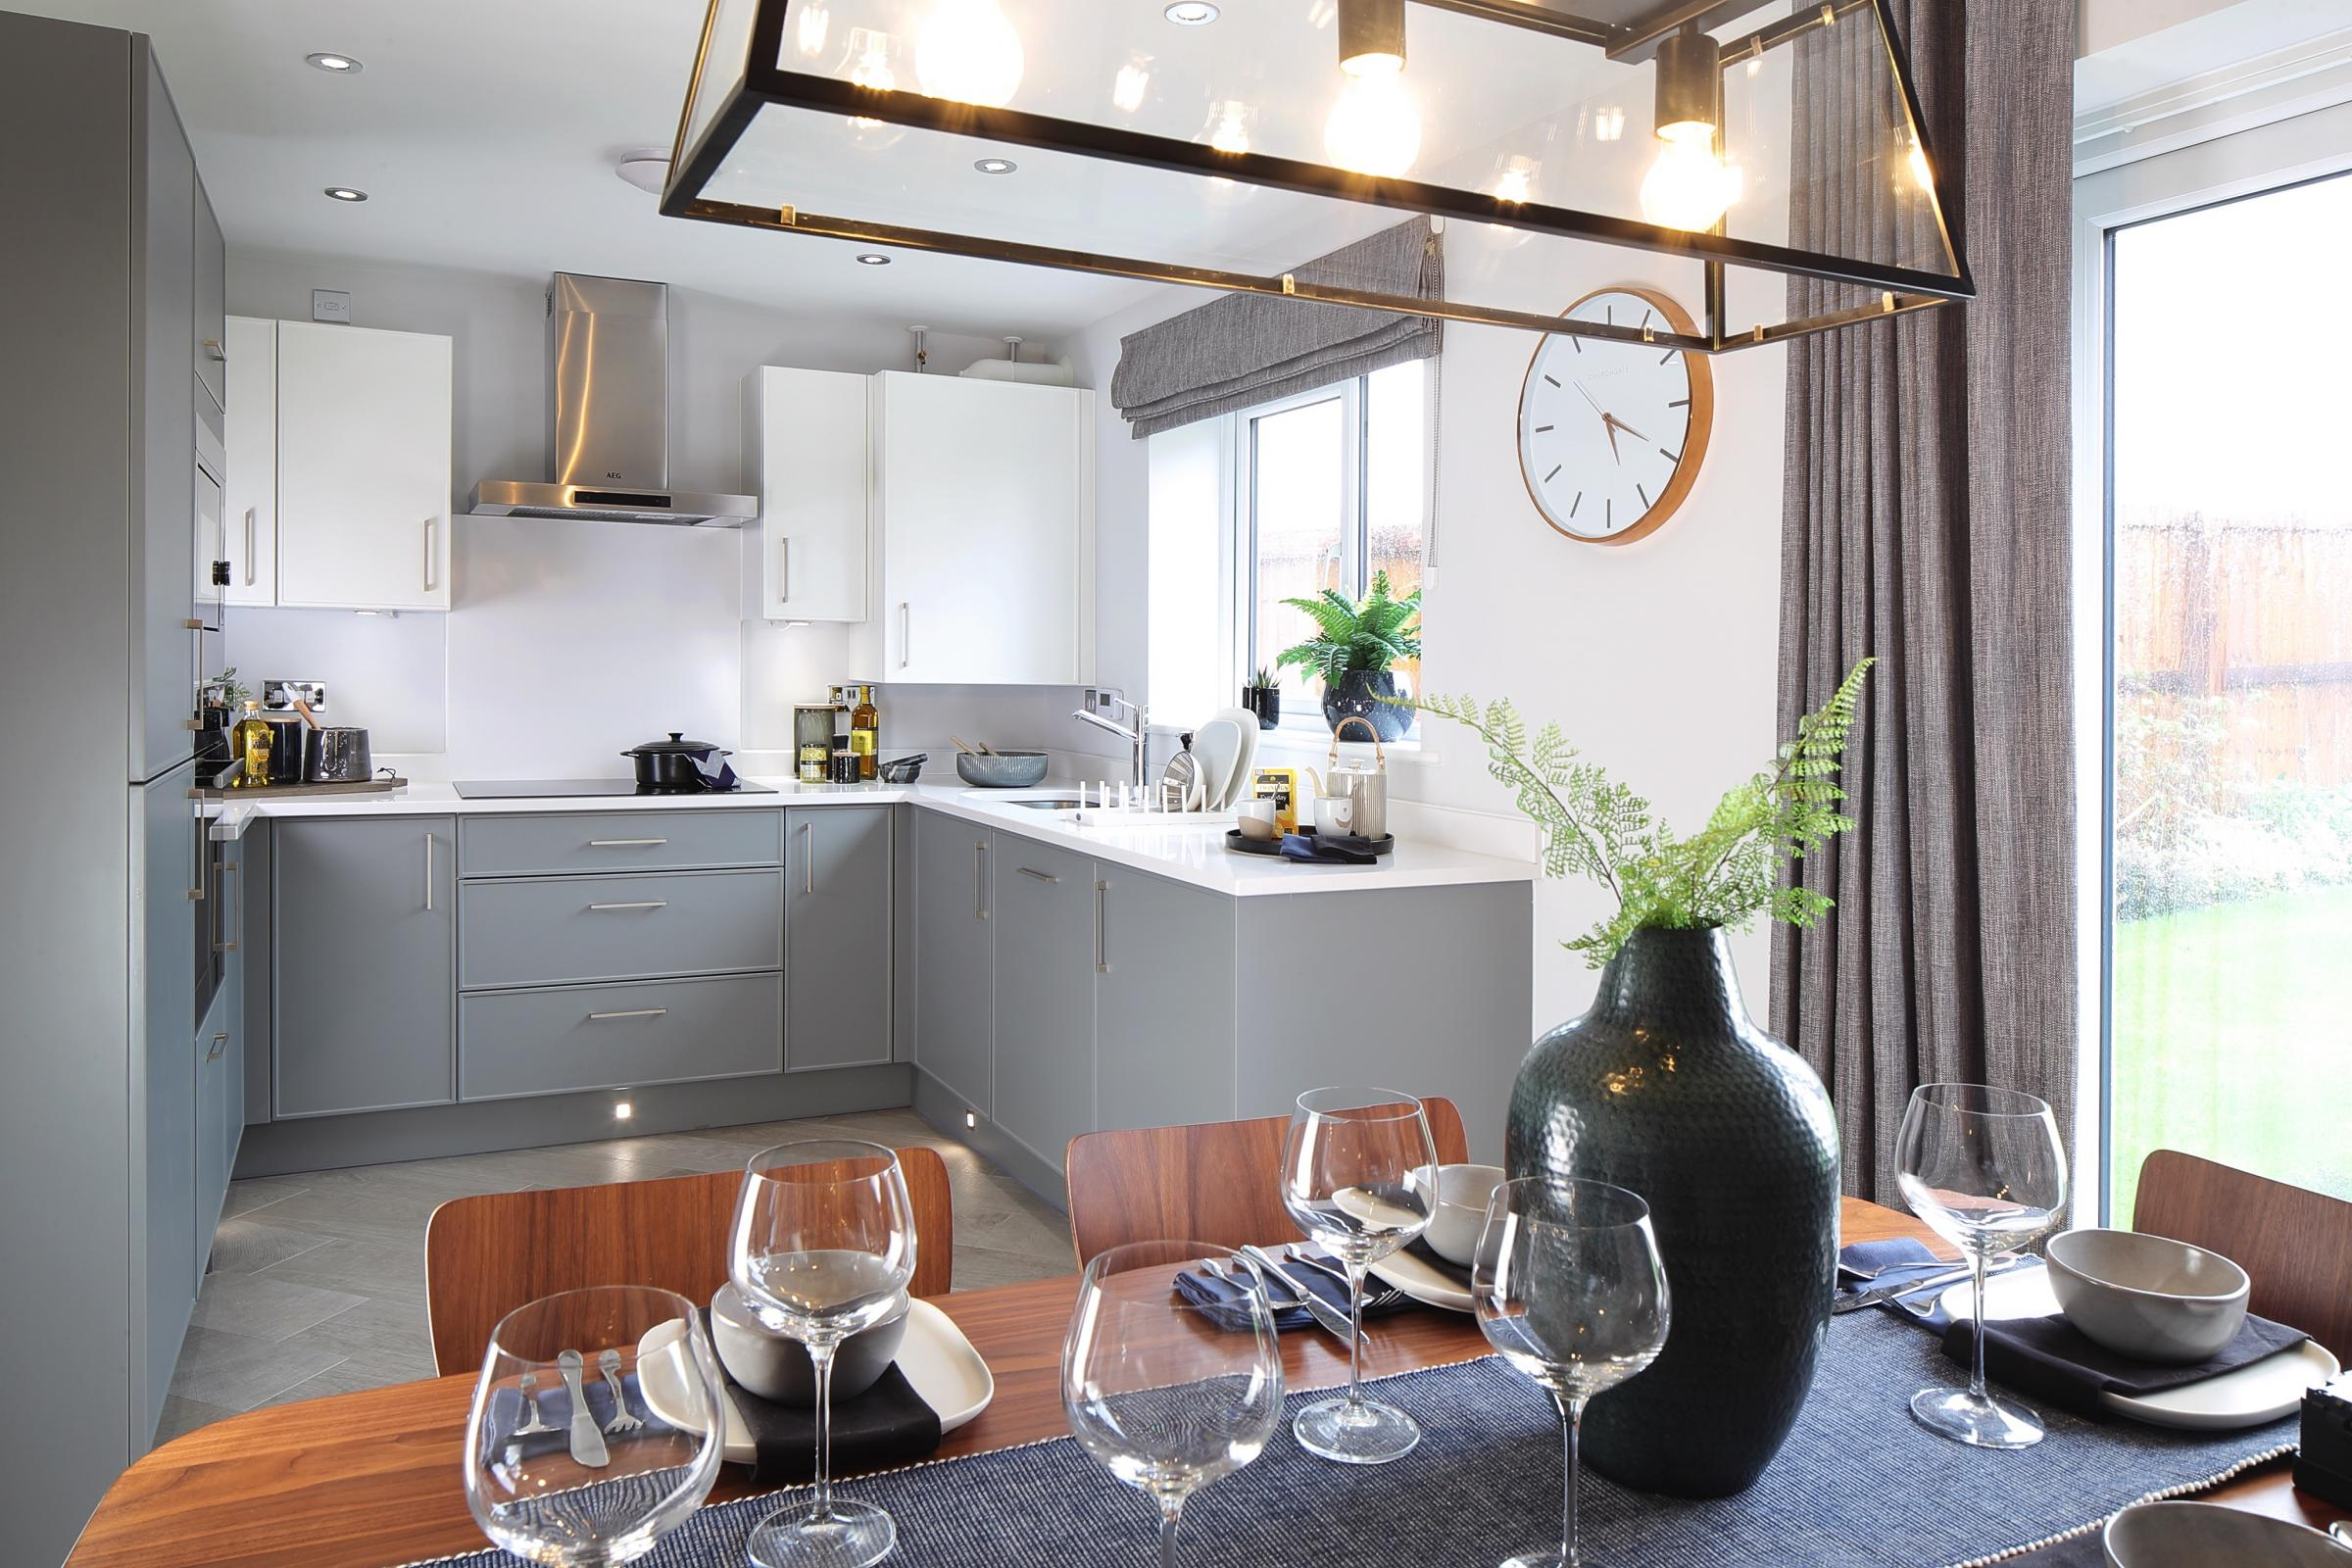 A typical Taylor Wimpey kitchen, which will be available on Glasdir Estate. Picture: Martin J. Toole/